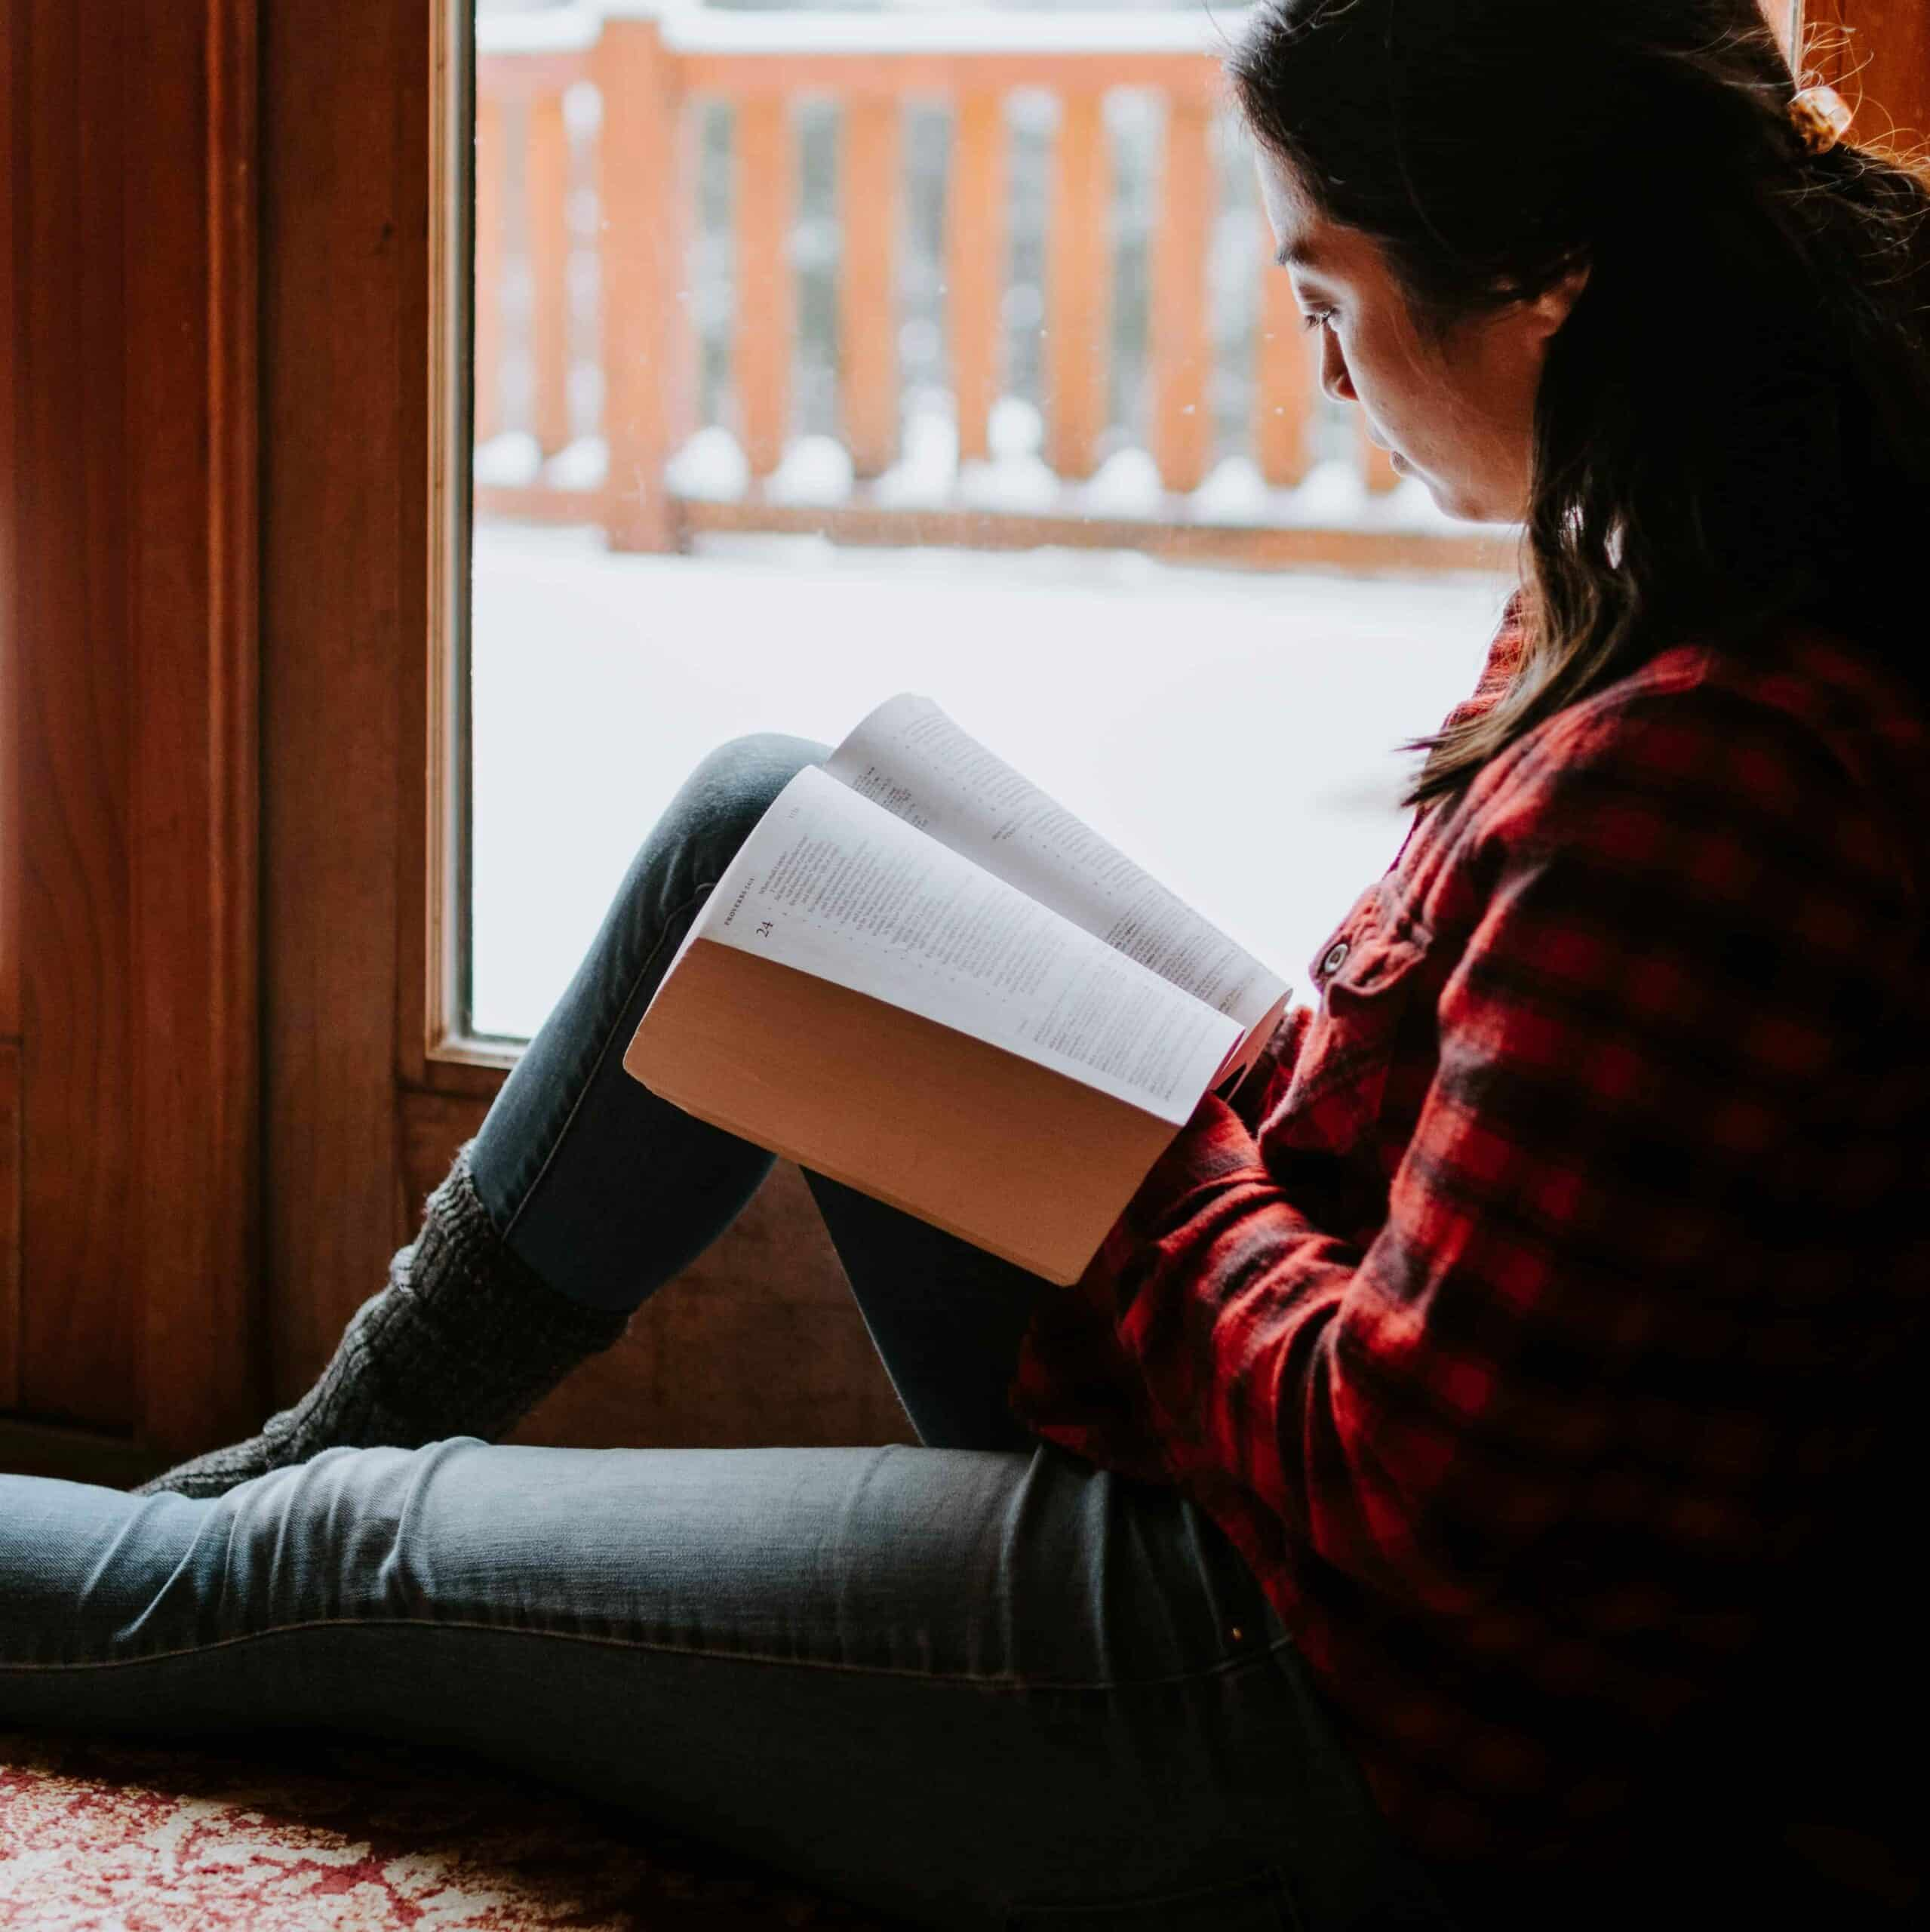 A woman reading the Bible by a window.